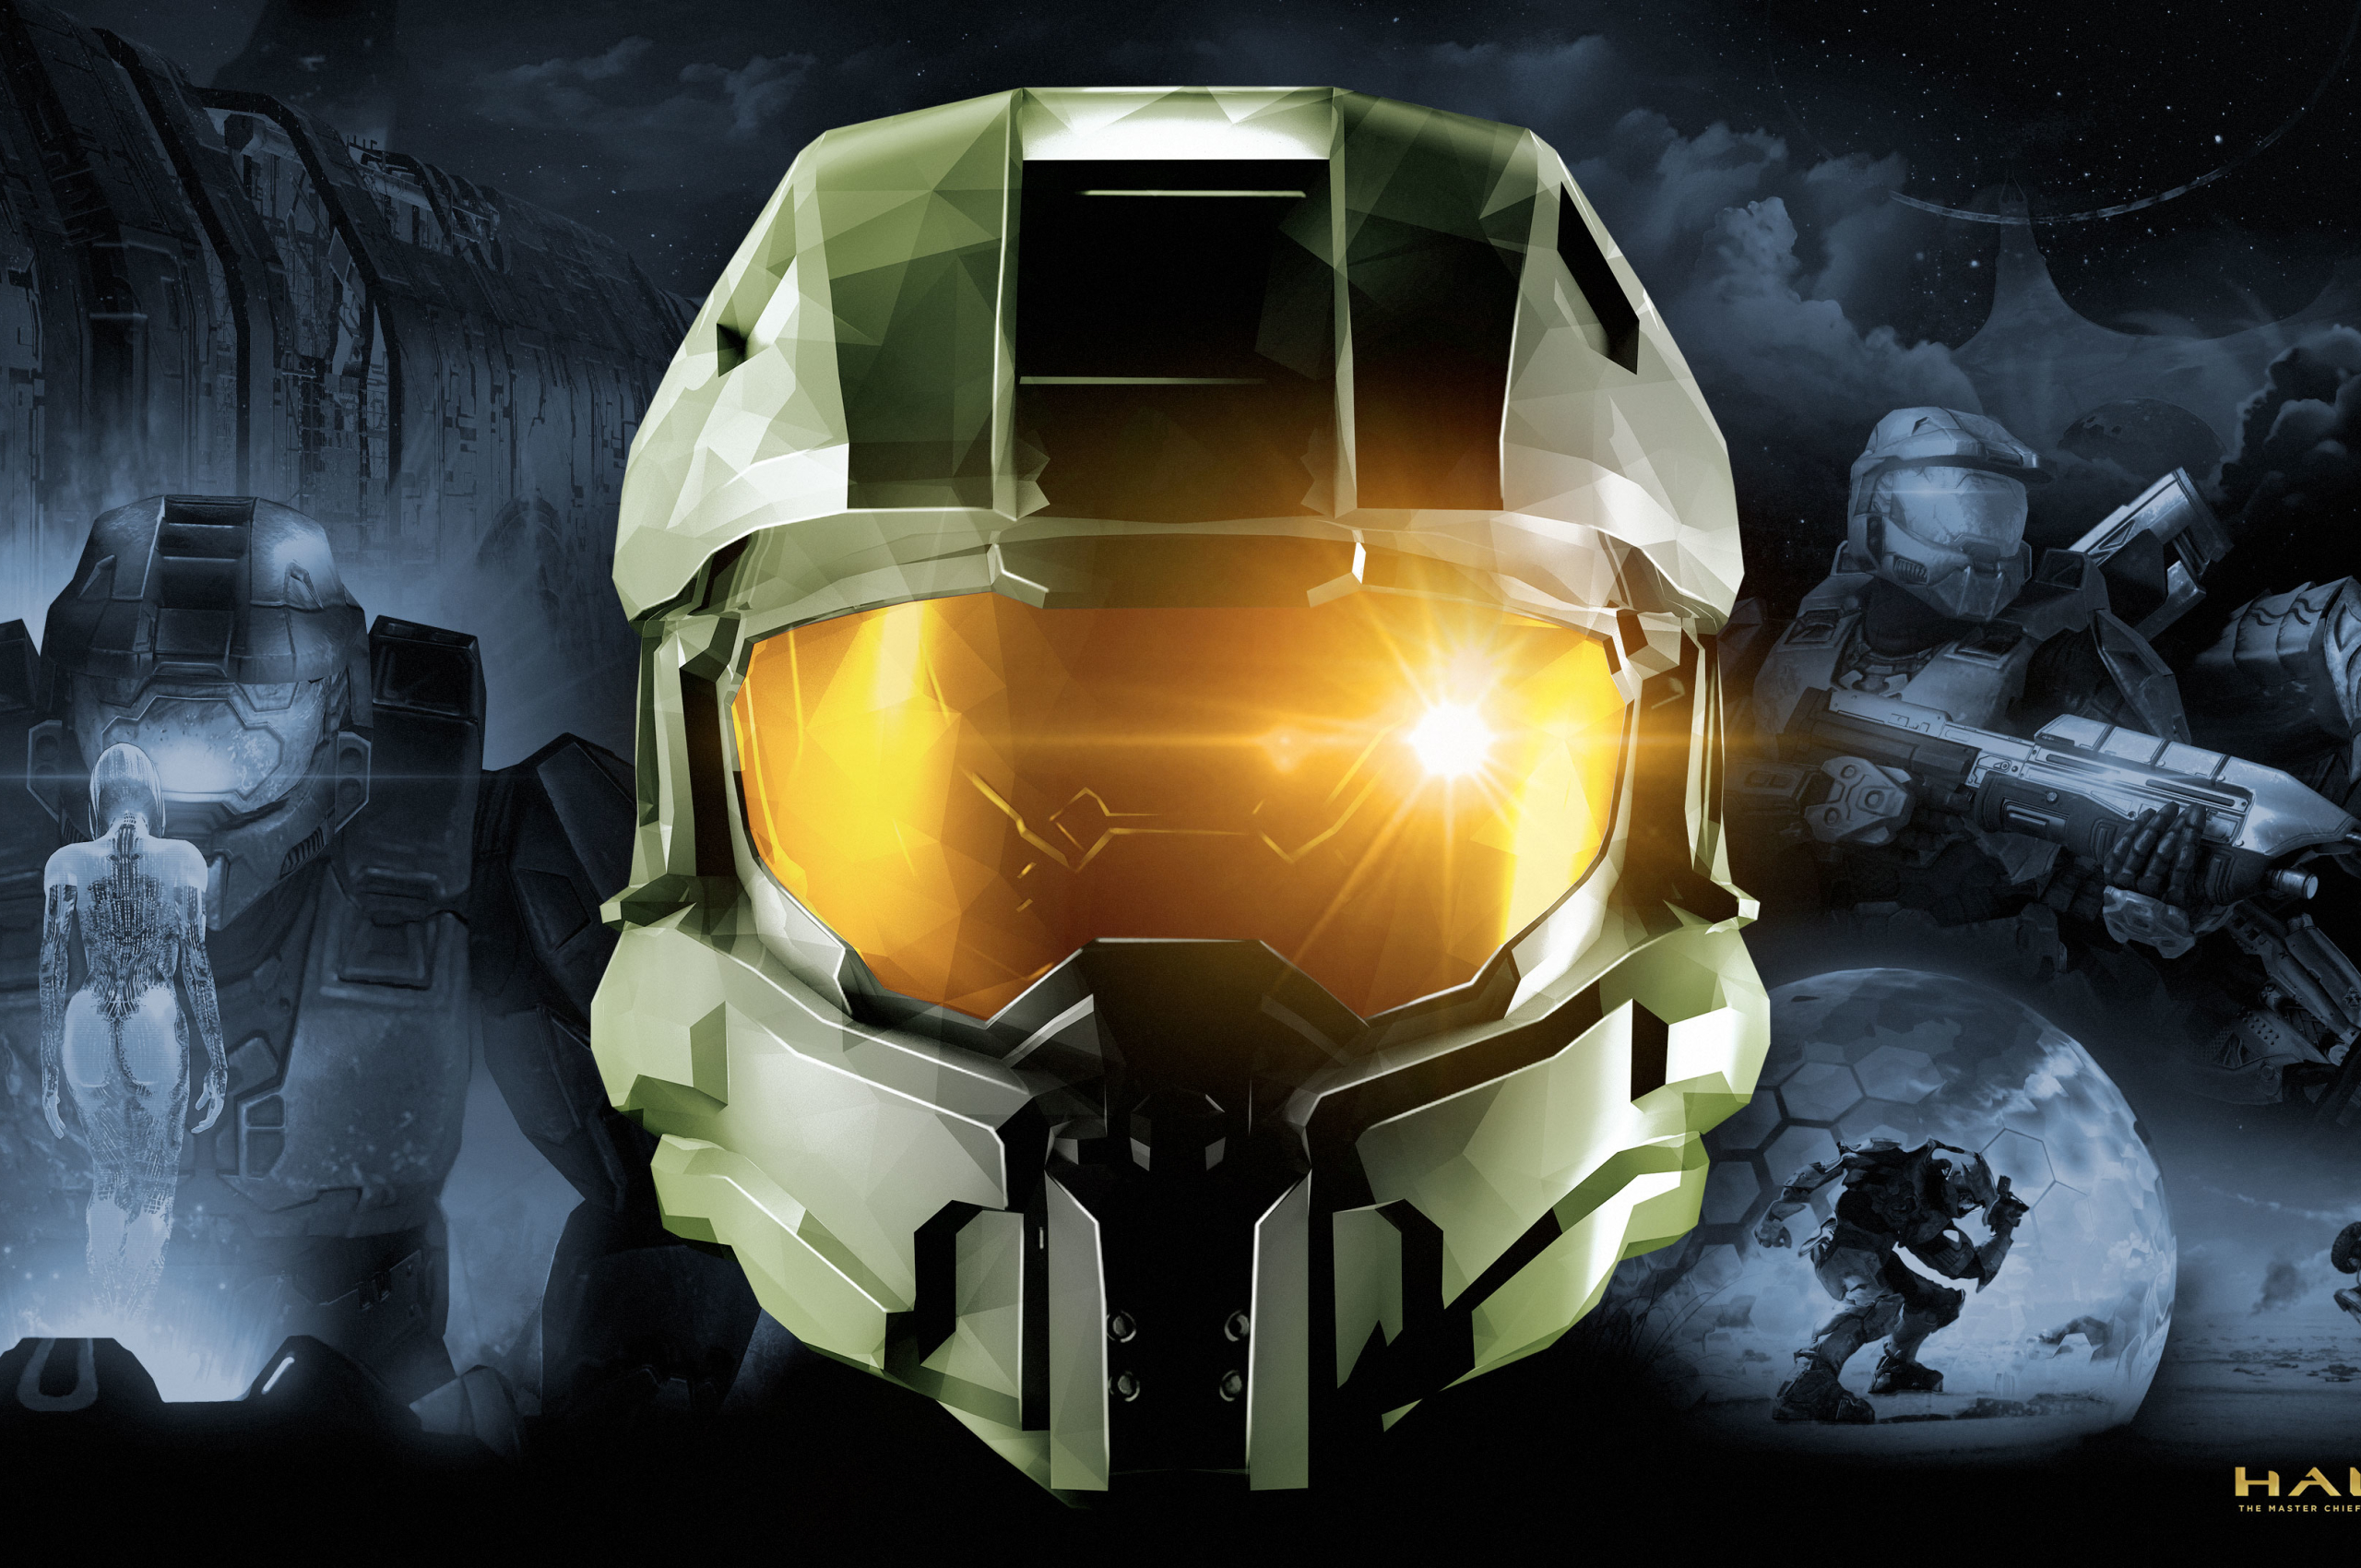 2560x1700 Halo The Master Chief Chromebook Pixel Wallpaper Hd Games 4k Wallpapers Images Photos And Background Wallpapers Den